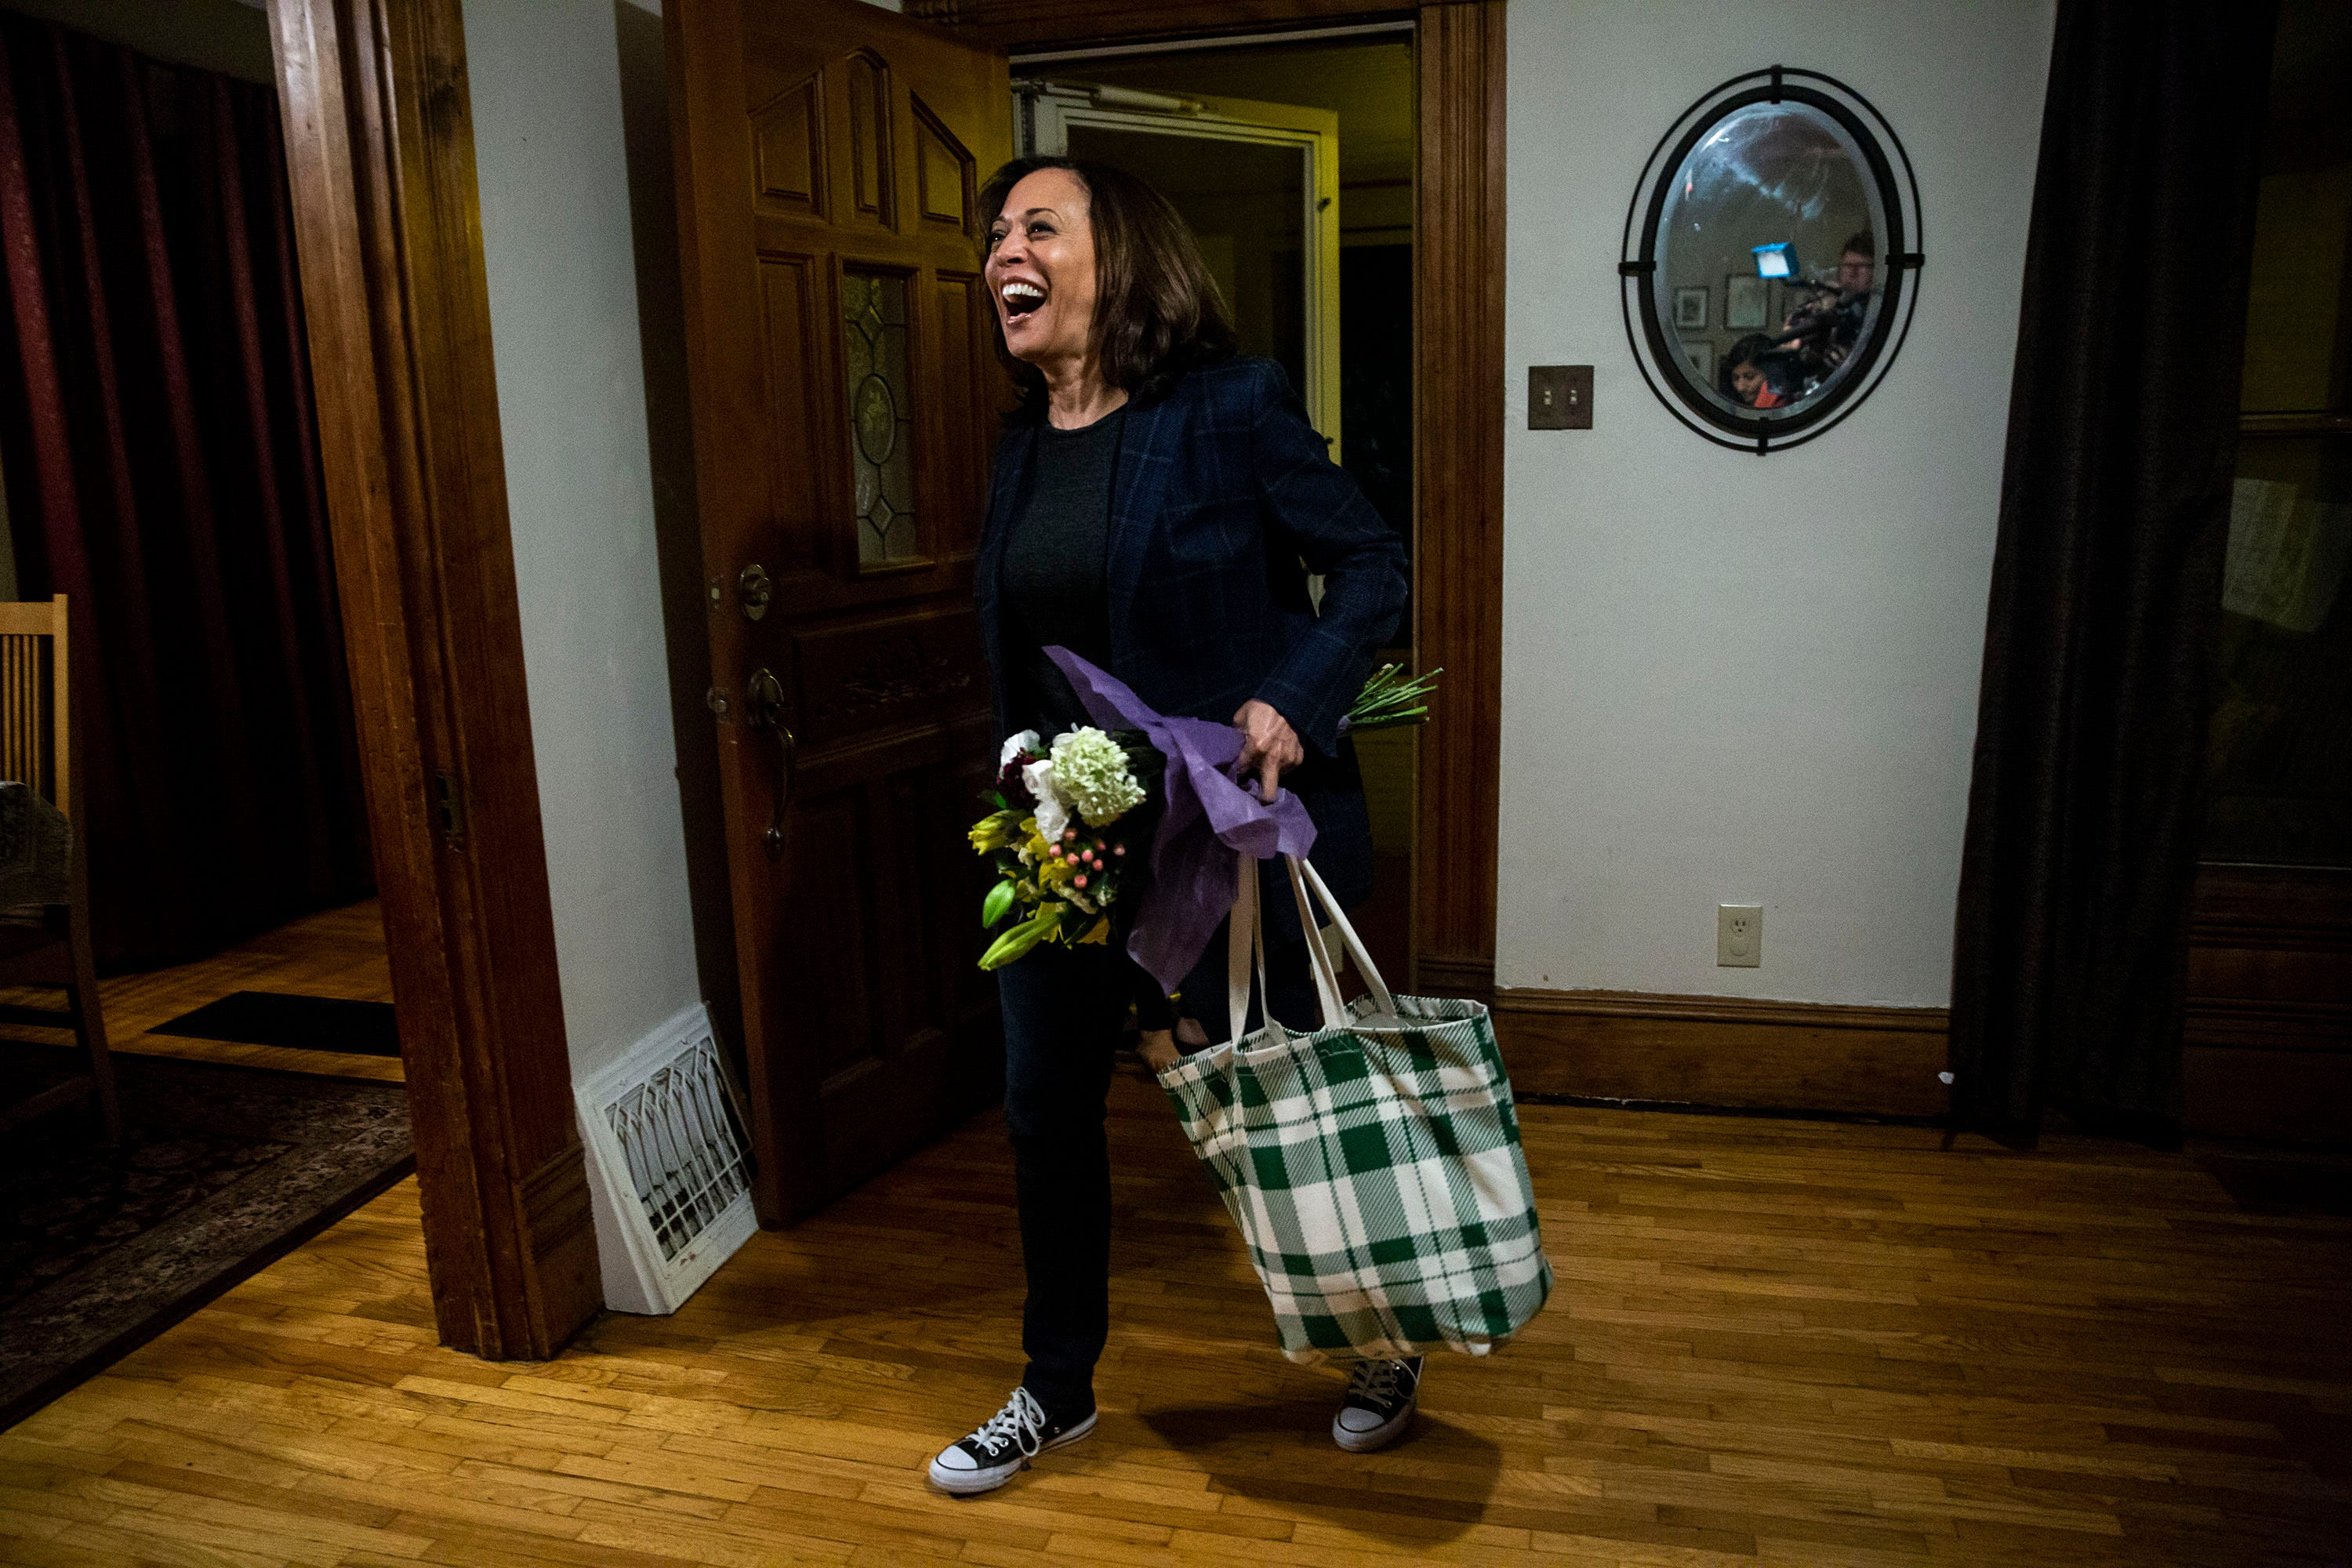 Photos: Kamala Harris joins a family in Ames for Sunday night dinner